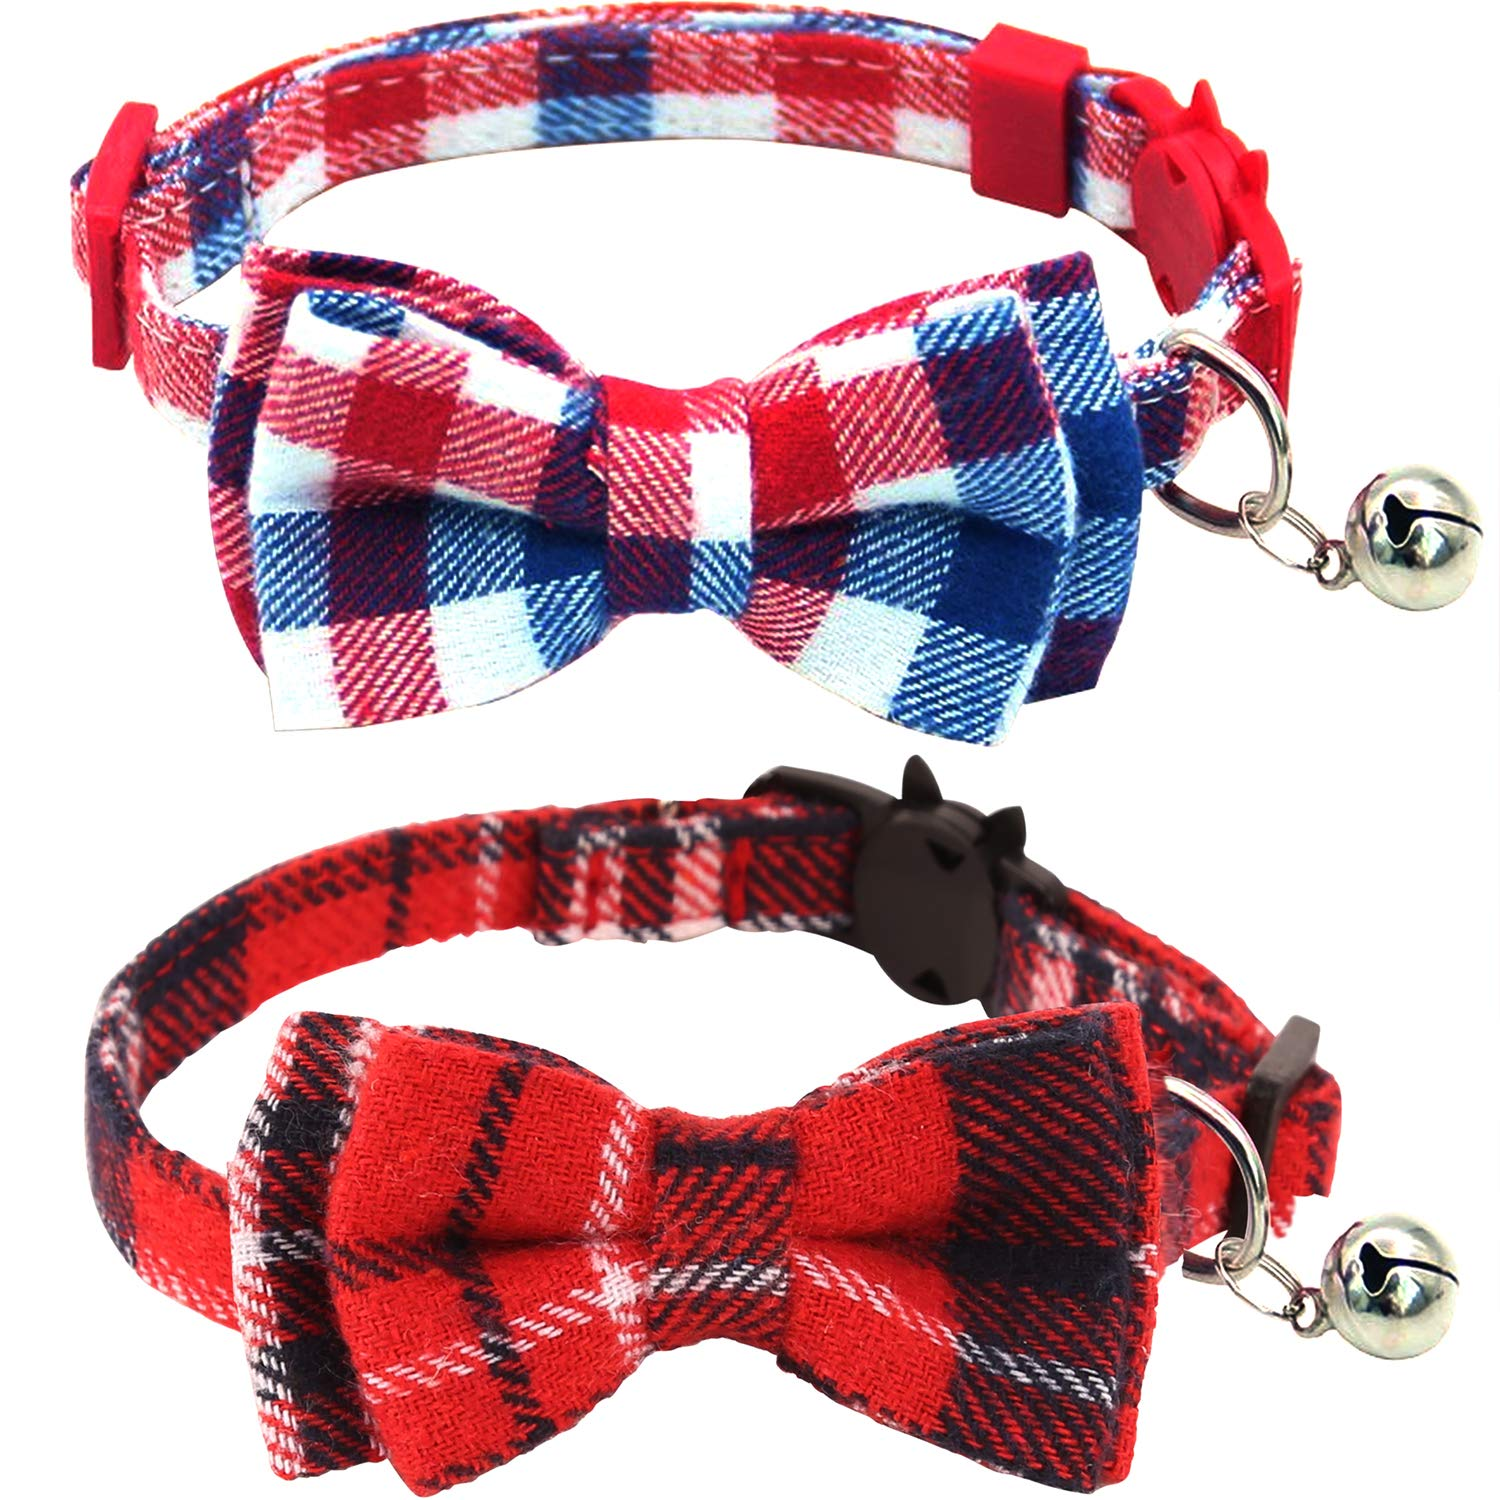 KUDES 2 Pack/Set Cat Collar Breakaway with Cute Bow Tie and Bell for Kitty and Some Puppies, Adjustable from 7.8-10.5…